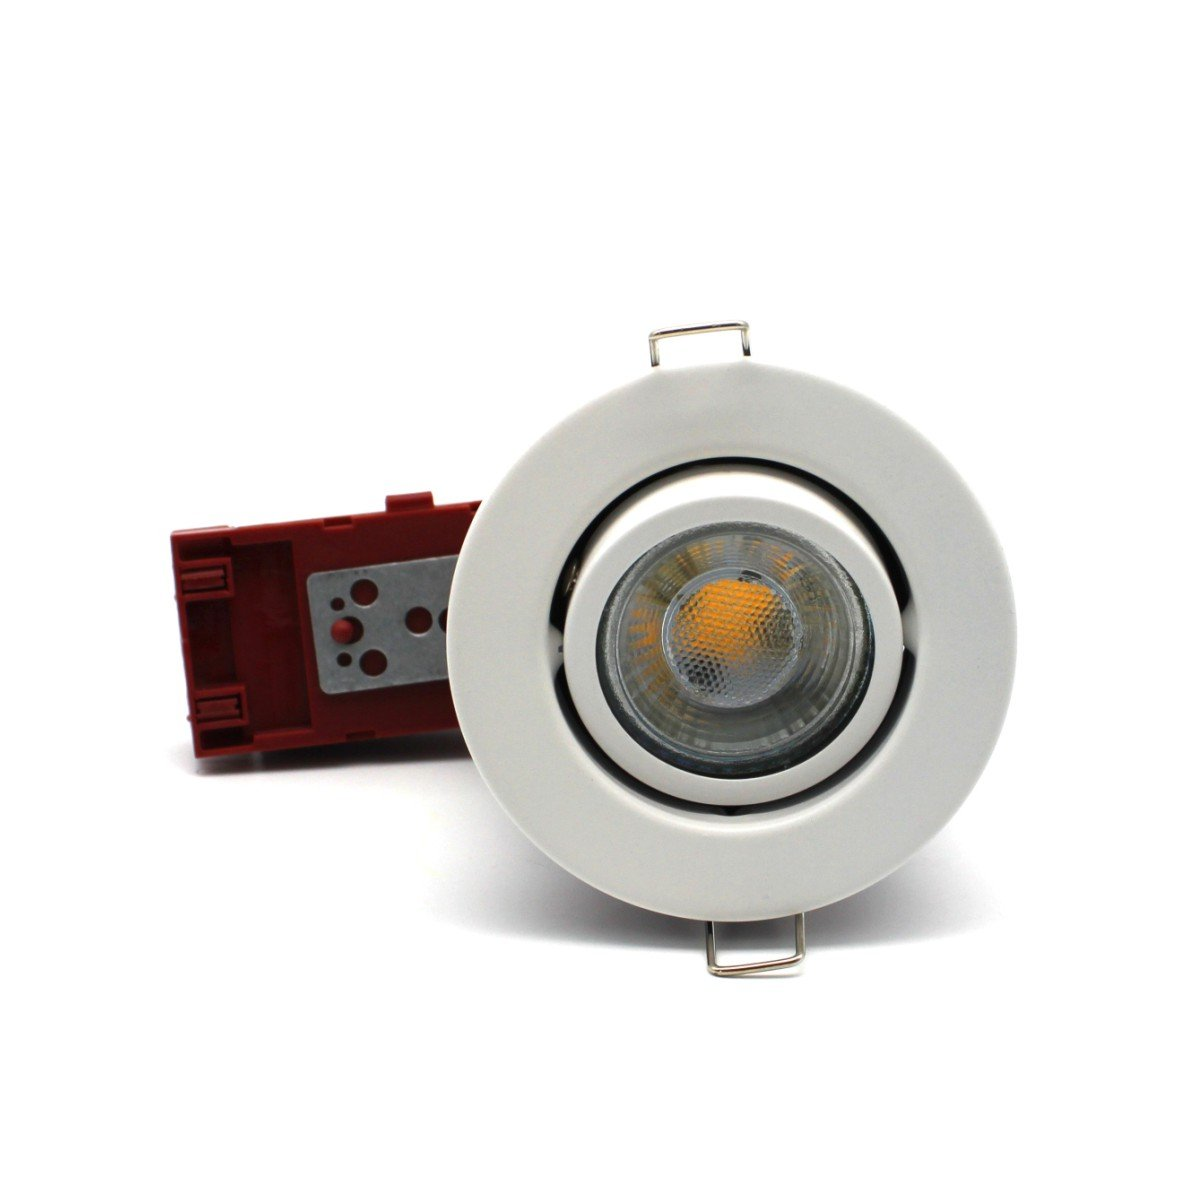 2 X Sanlumia LED Fire Rated Downlight Can GU10 Recessed Ceiling Twist /& Lock Interchangeable Tilted Downlight IP20 Chrome